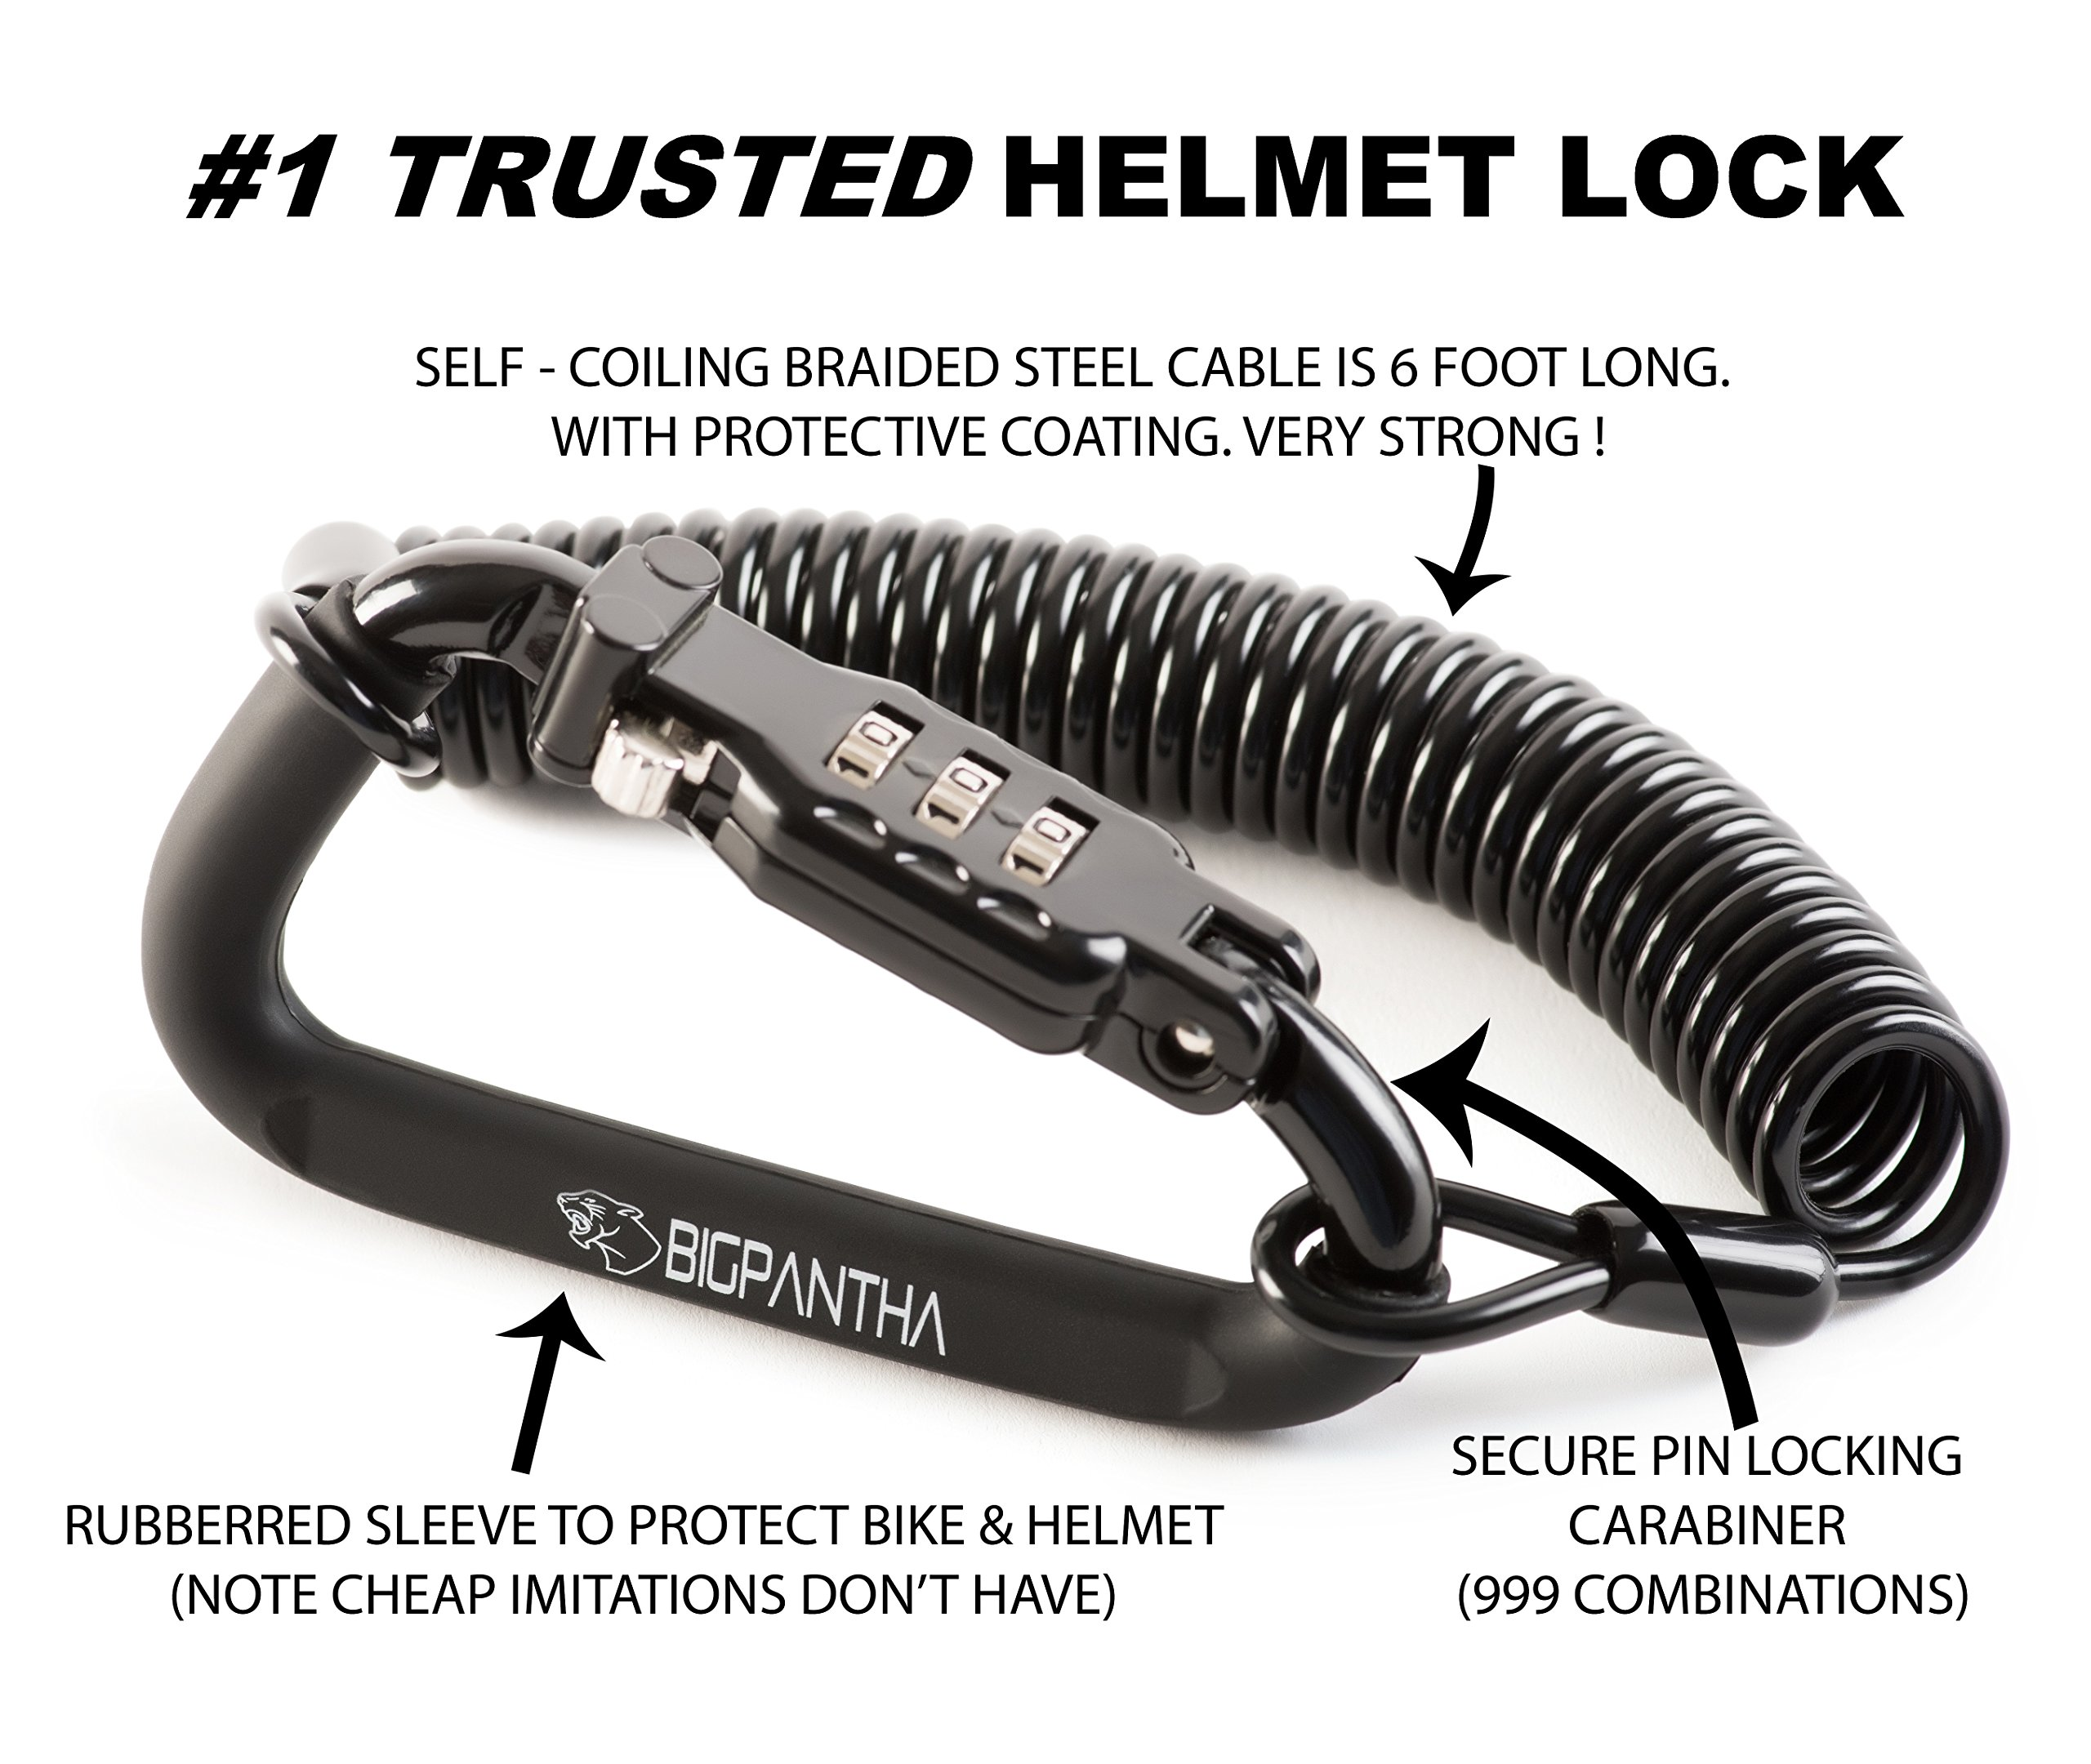 BigPantha Motorcycle Helmet Lock & Cable. Sleek Black Tough Combination PIN Locking Carabiner Device Secures Your Motorbike, Bicycle or Scooter Crash Hat (and Jacket) to Your Bike from